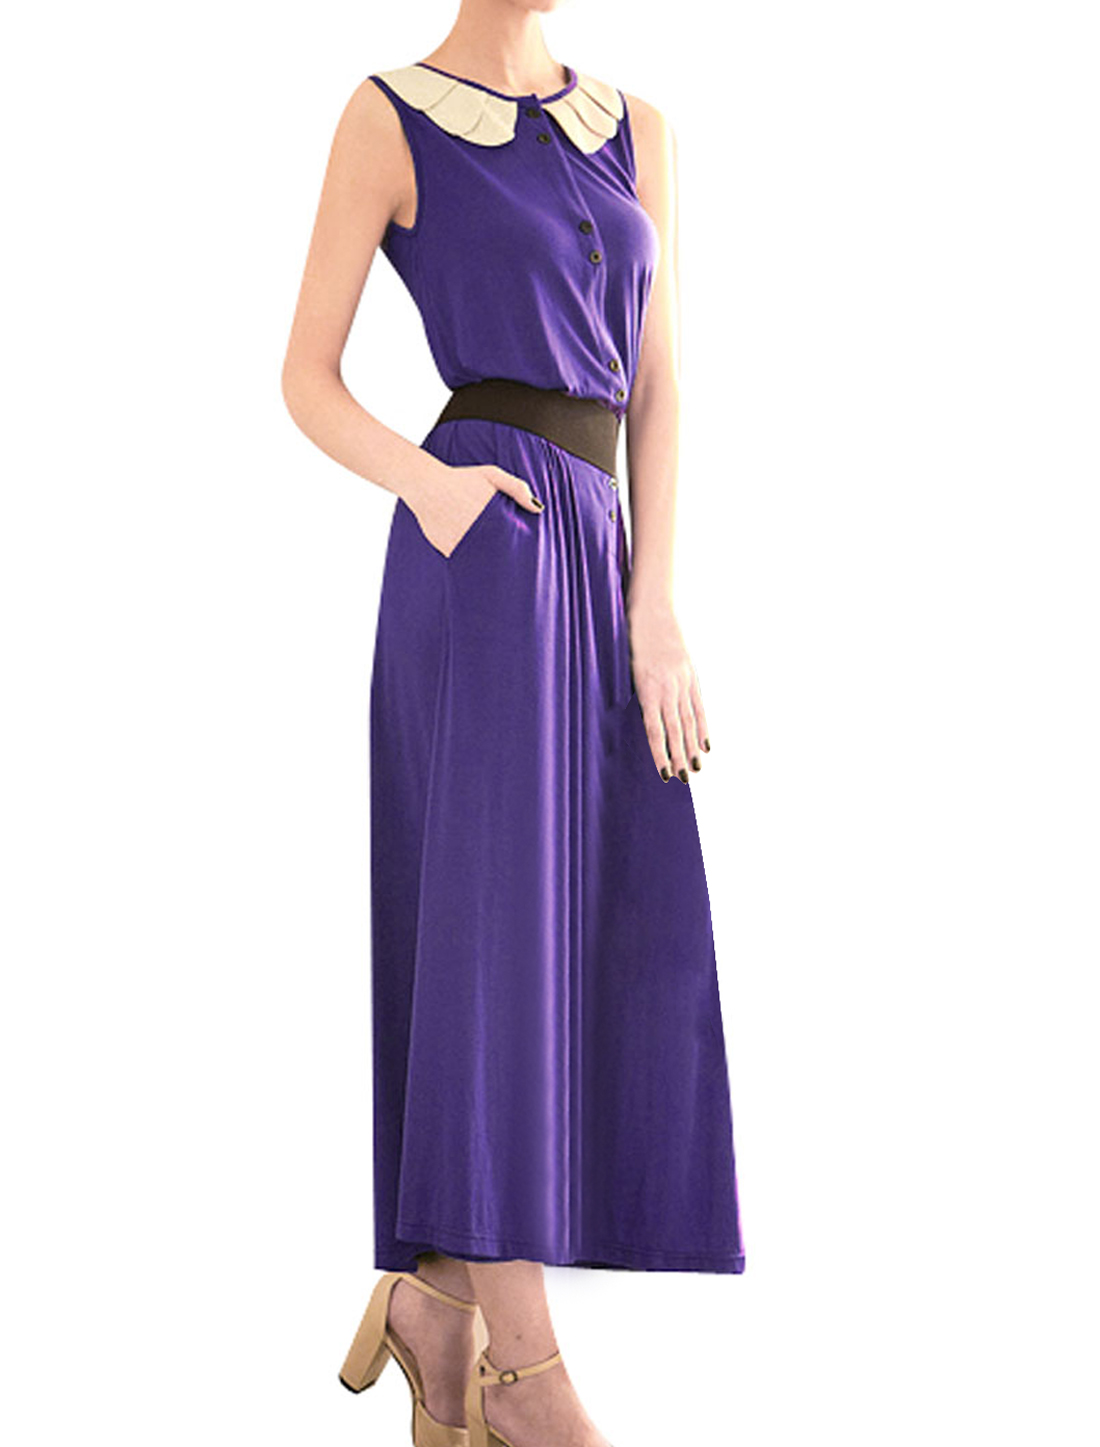 XS Woman Purple Round Neck Sleeveless Petals Collar Maxi Dress